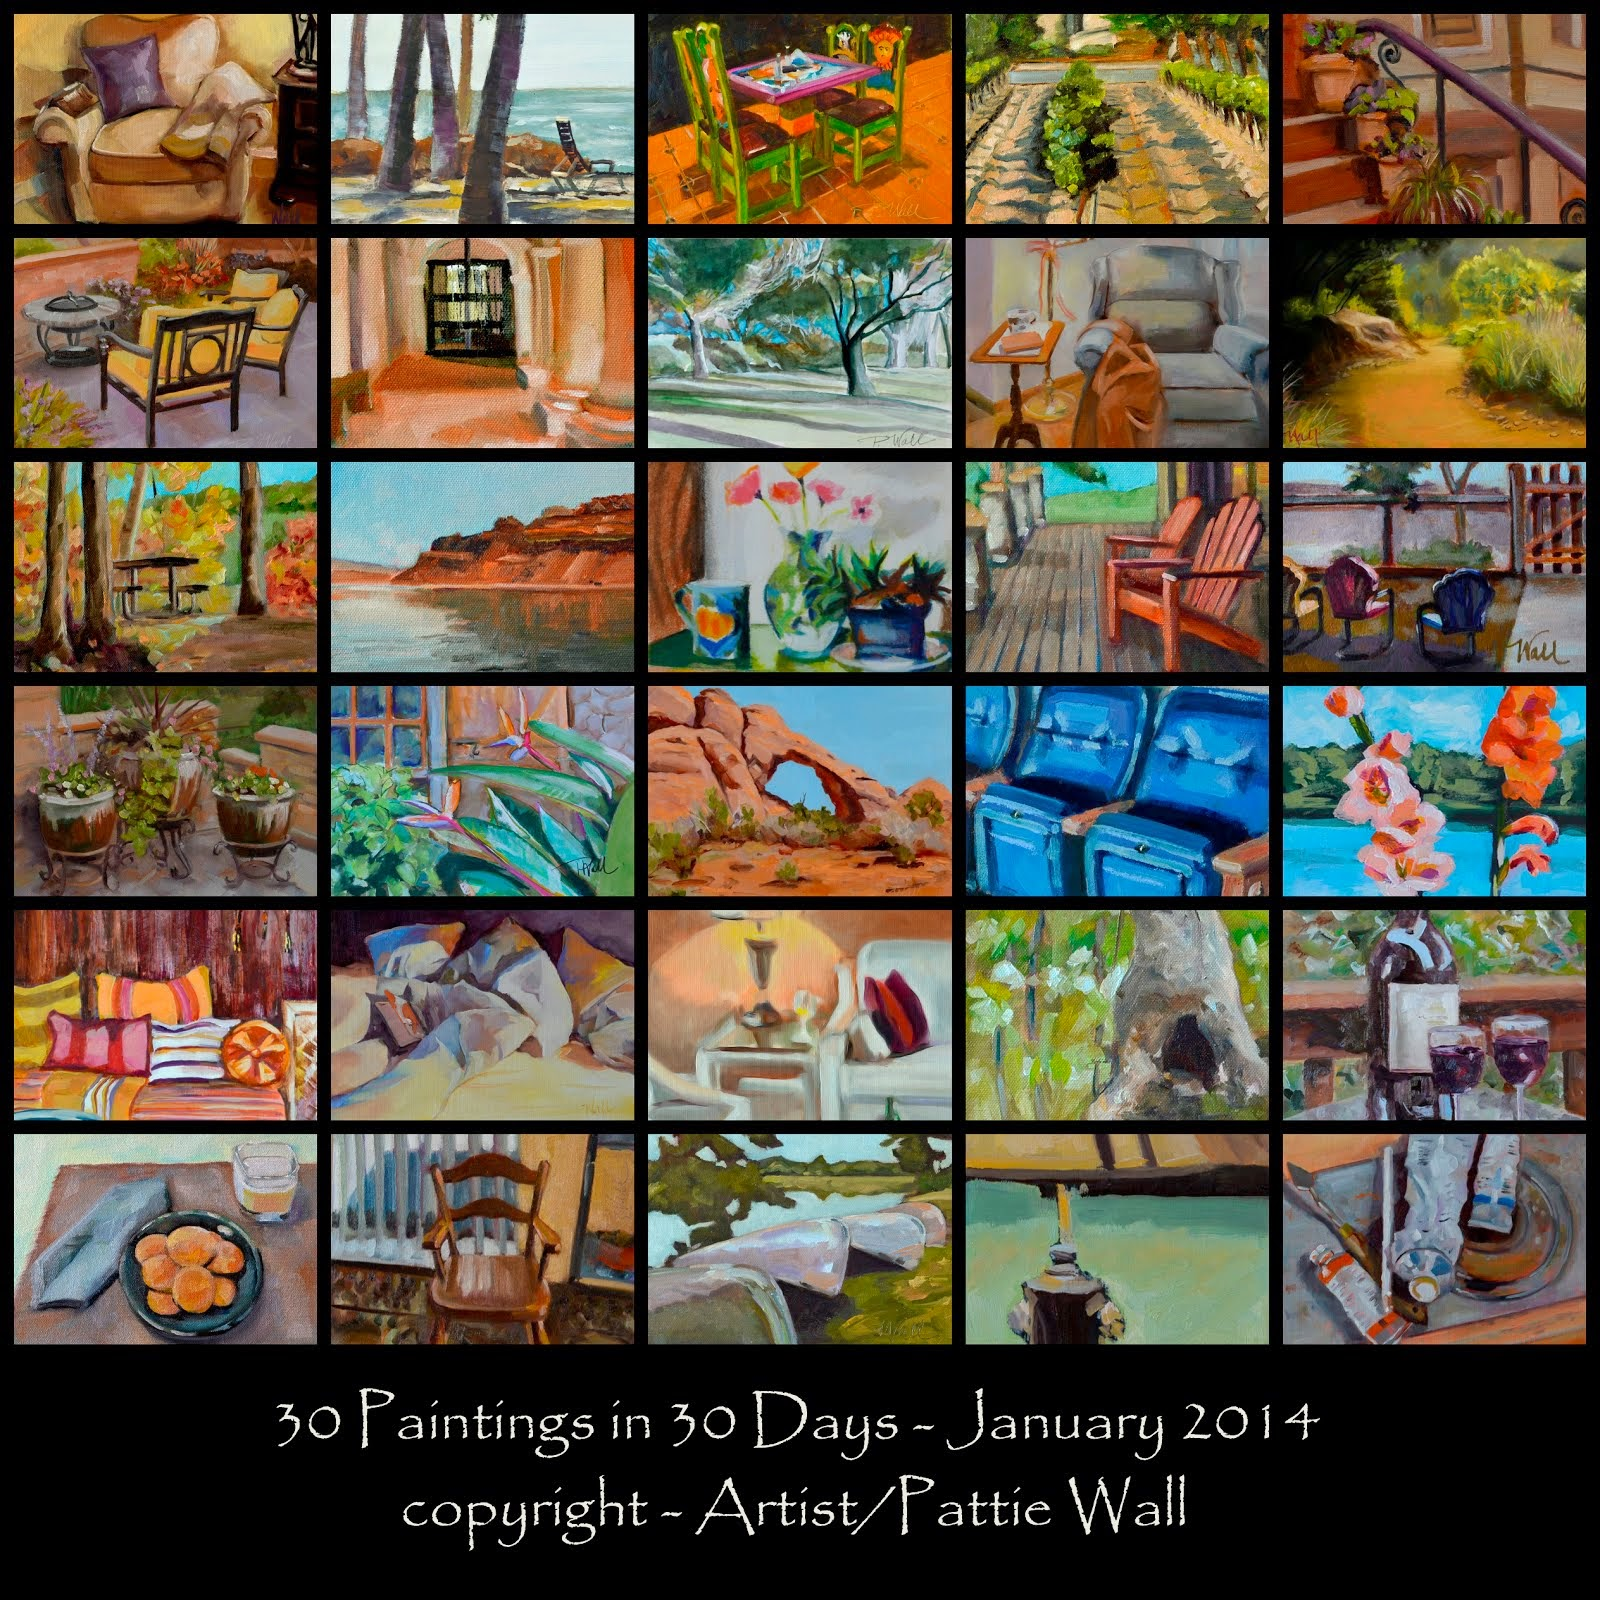 30 Paintings in 30 Days - 2014